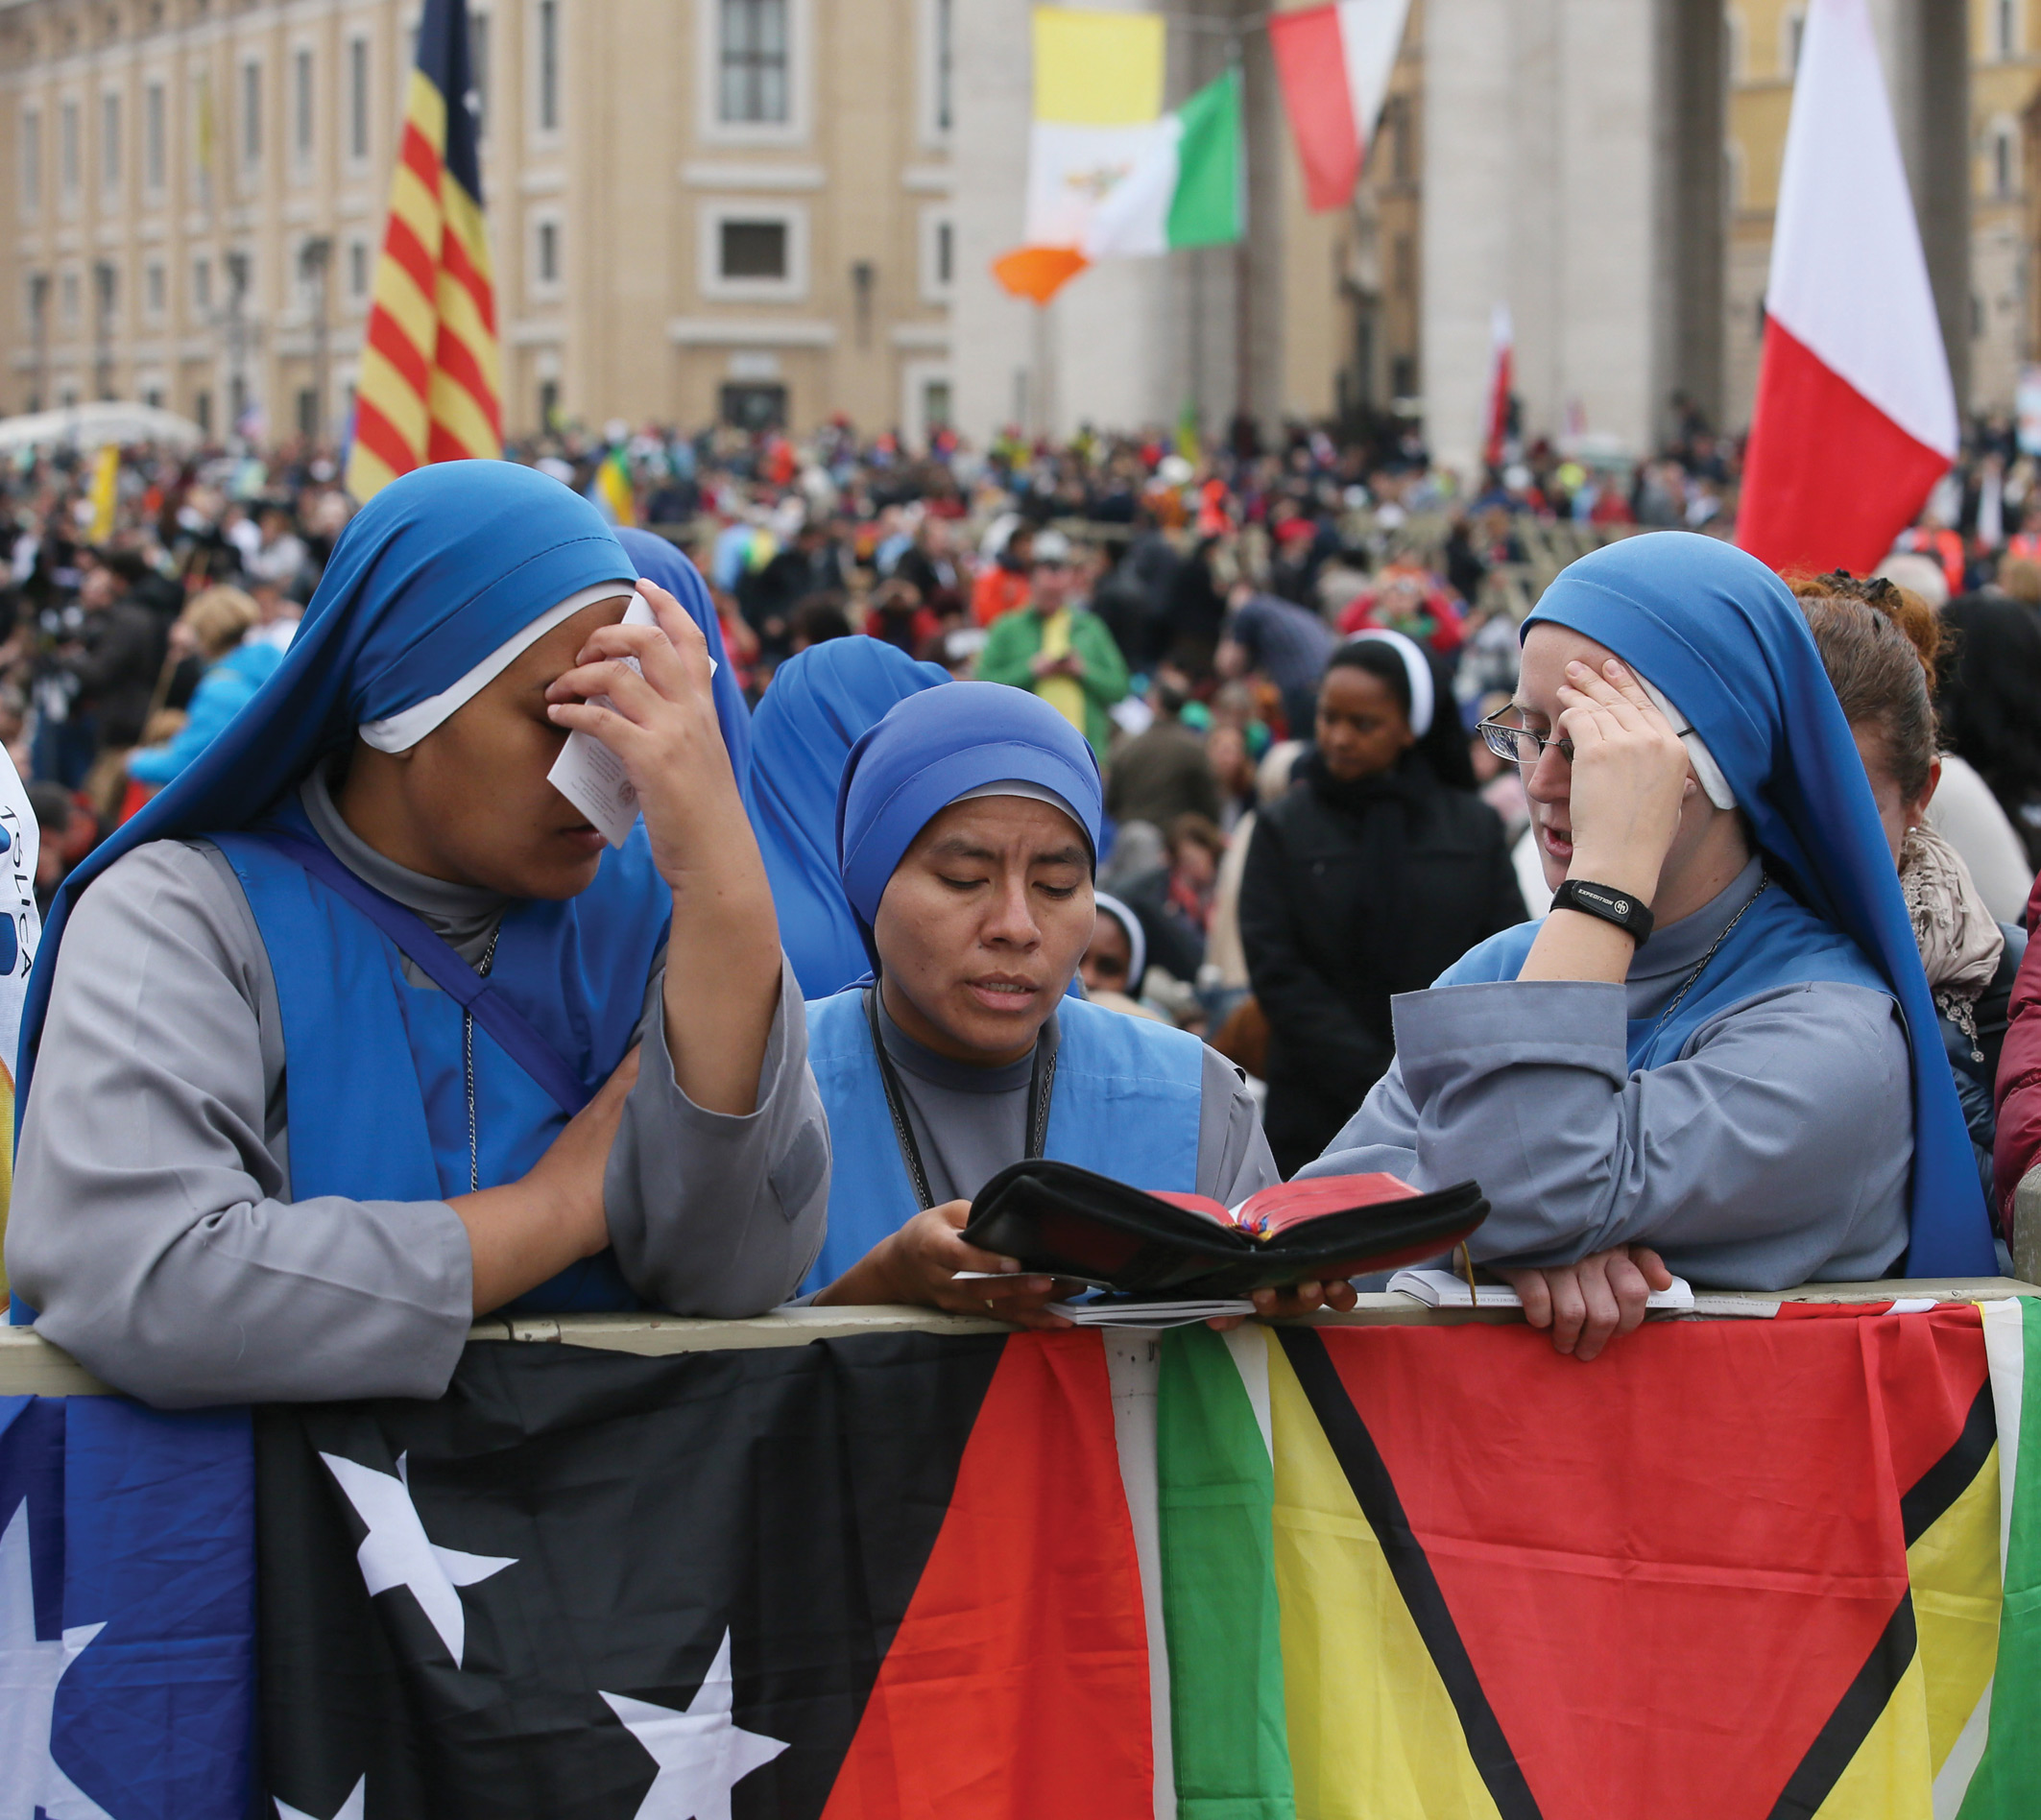 Pilgrims from every corner of the world joined at Saint Peter's square.